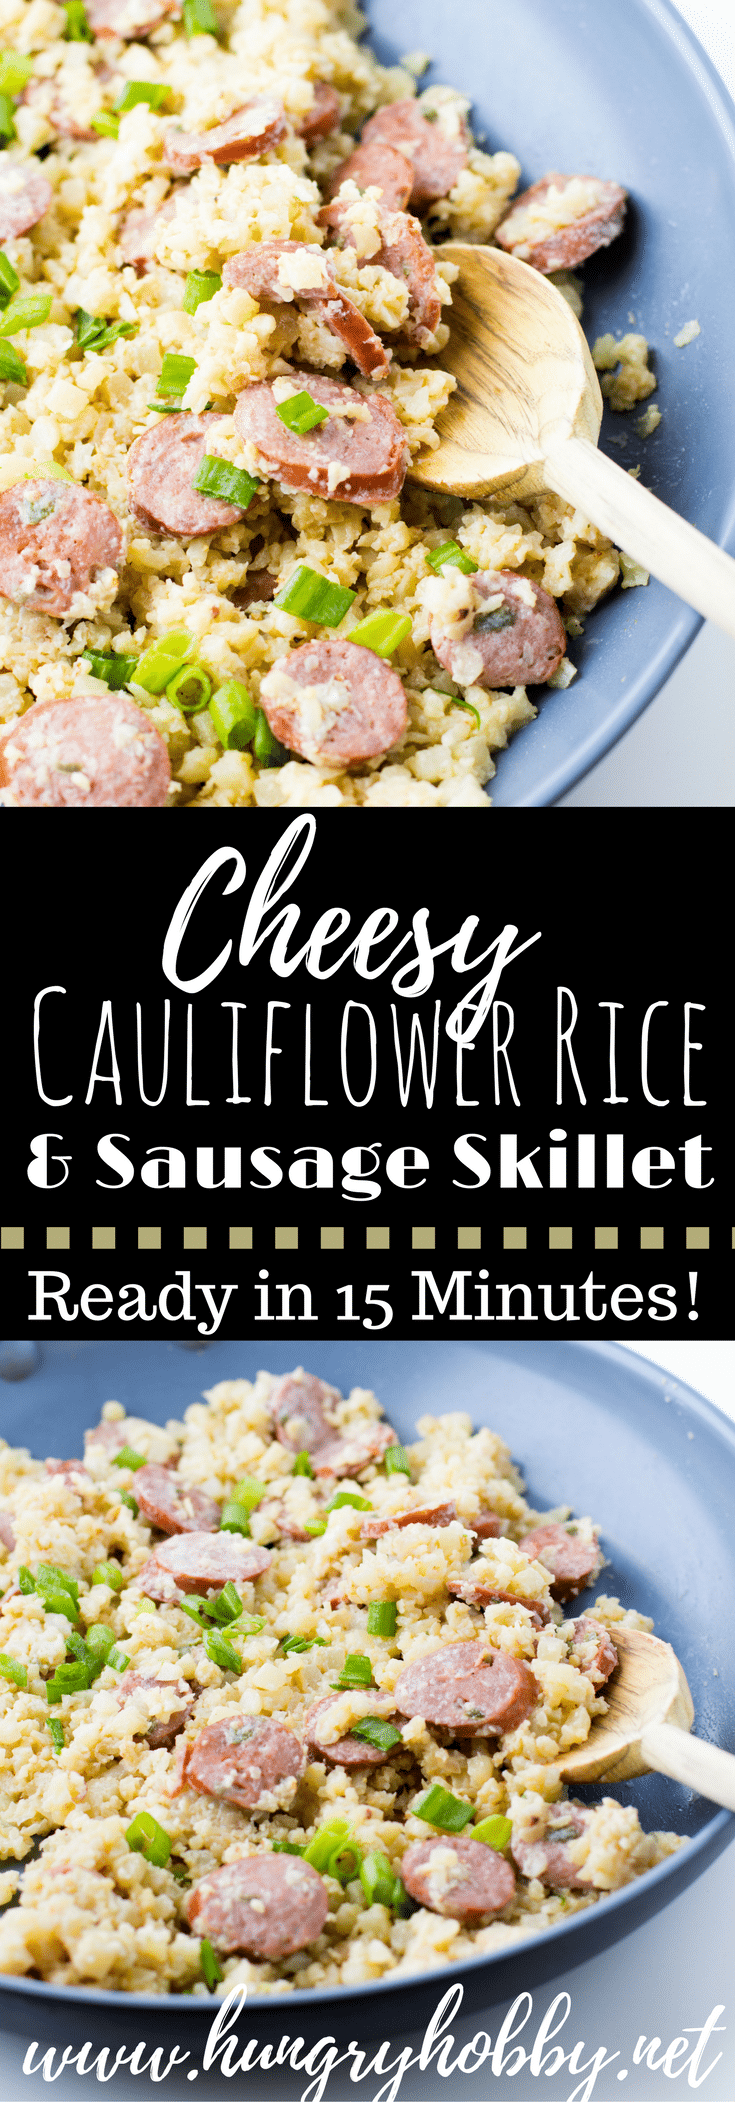 Cheesy Cauliflower Rice & Sausage Skillet - a healthy low carb dinner ready in 10 minutes or less!